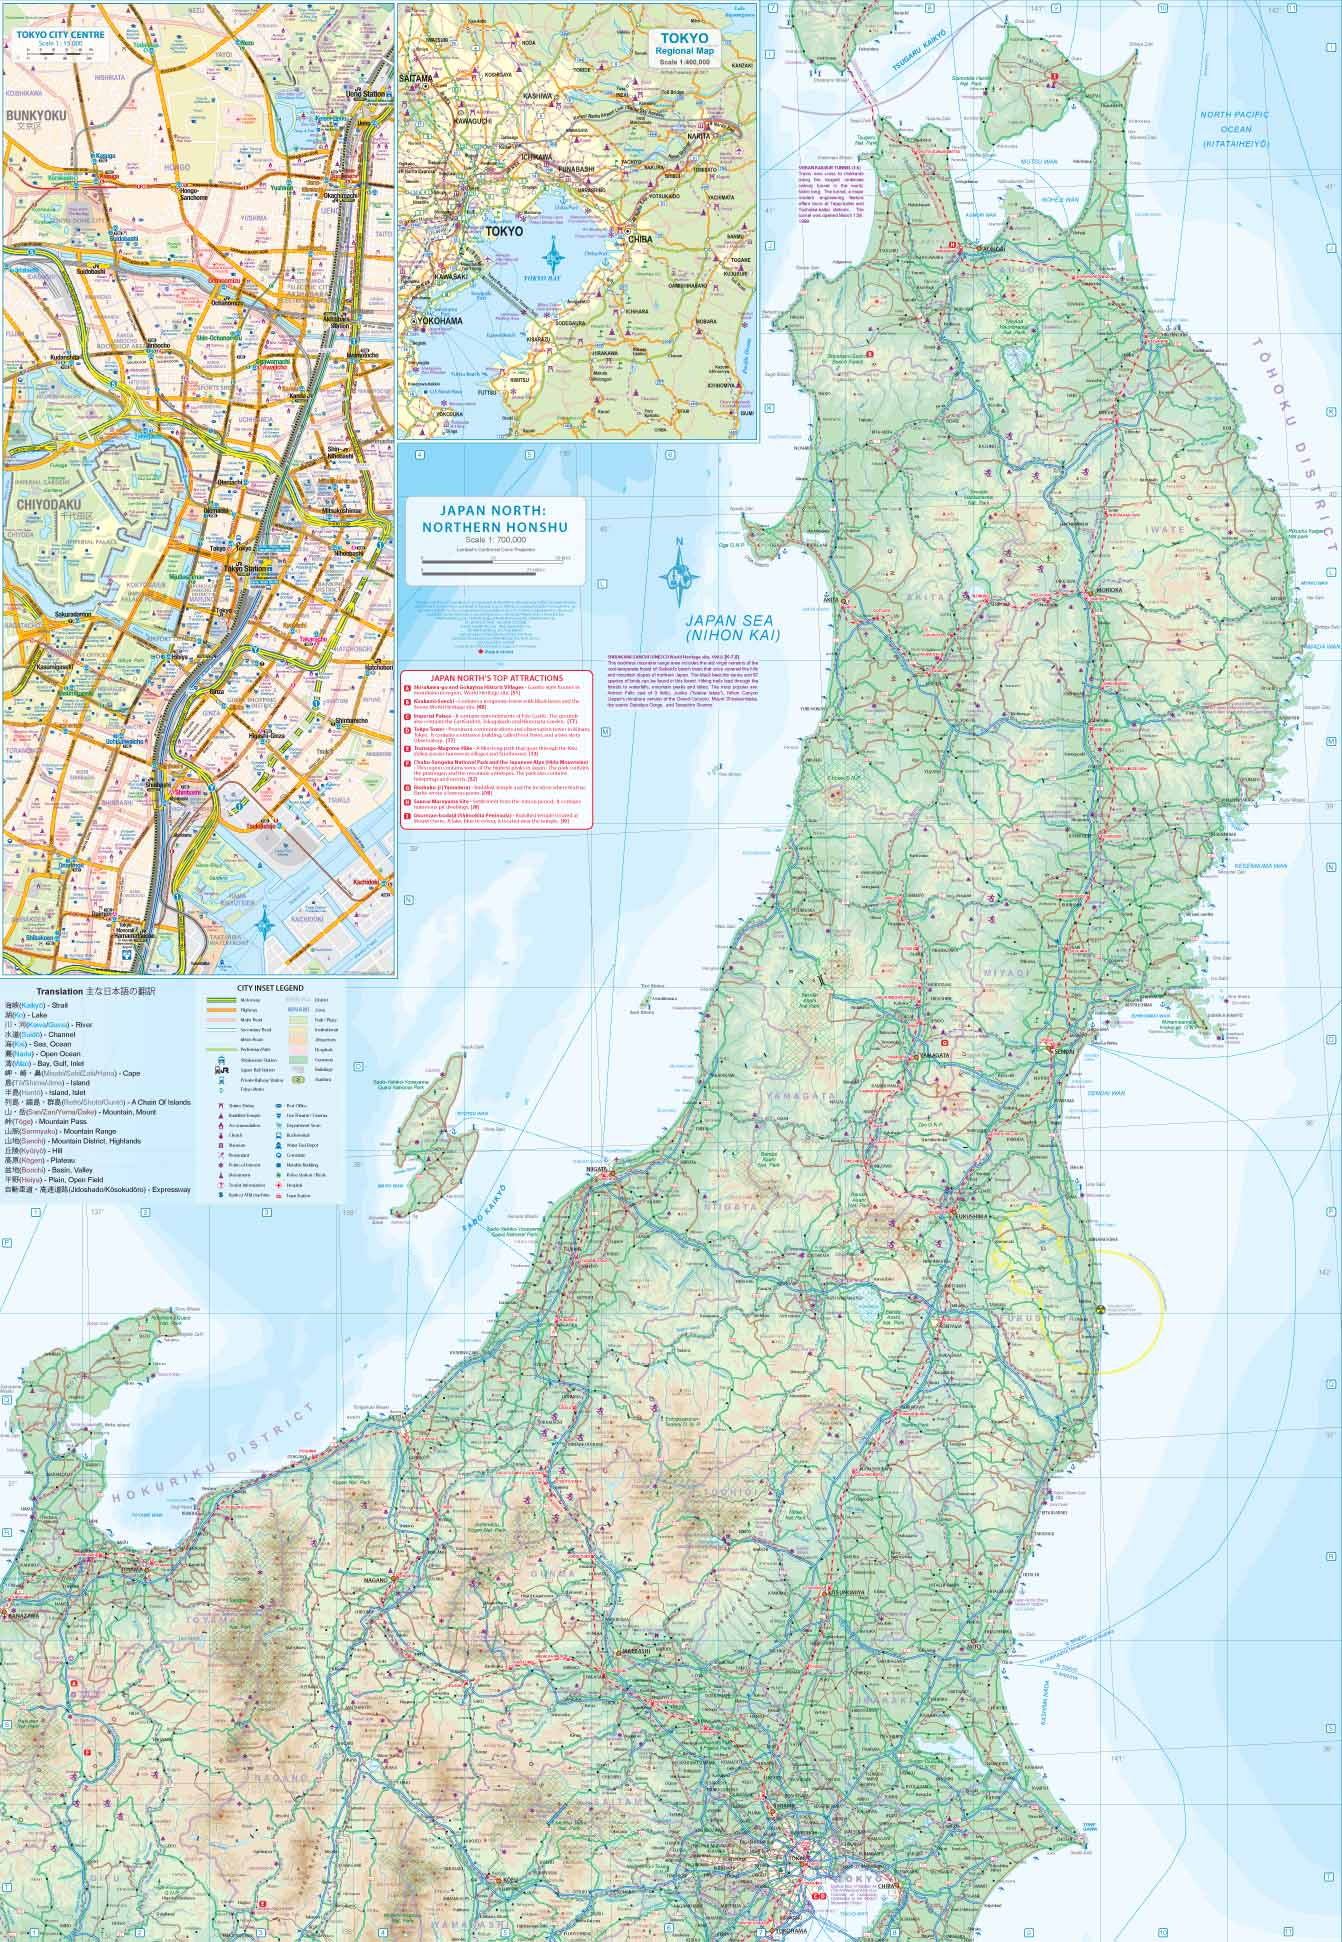 Maps for travel, City Maps, Road Maps, Guides, Globes ... Sea Of Japan Hokkaido Map on map of tachikawa japan, map of shimizu japan, map of himeji japan, map of mount koya japan, map of guam japan, map of chitose japan, map of kuril islands japan, map of japan cities, map of ibaraki japan, map of naoshima japan, map of otaru japan, map of sagamihara japan, map of yokota air base japan, map of honshu japan, map of volcano islands japan, map of sado japan, map of shinjuku japan, map of mount aso japan, map of hyogo prefecture japan, map of yokote japan,